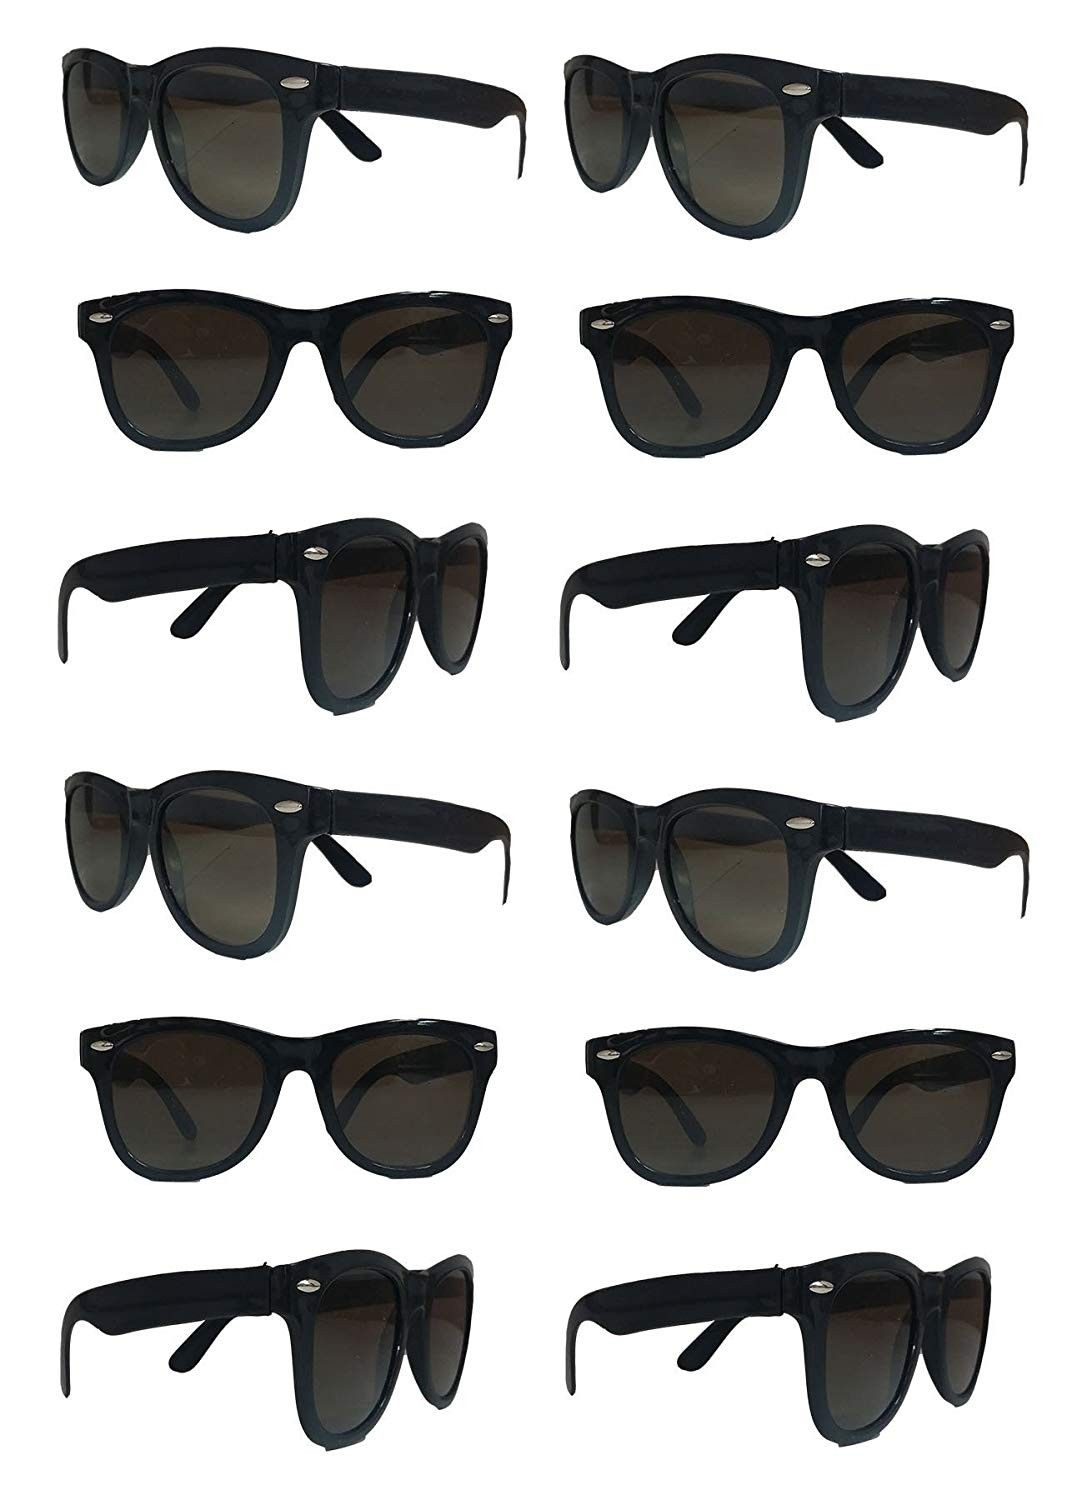 608ebd7c Black Sunglasses Wholesale Party Pack-12 Retro Wayfarer Risky Business-Blues  Brothers Black Sunglasses